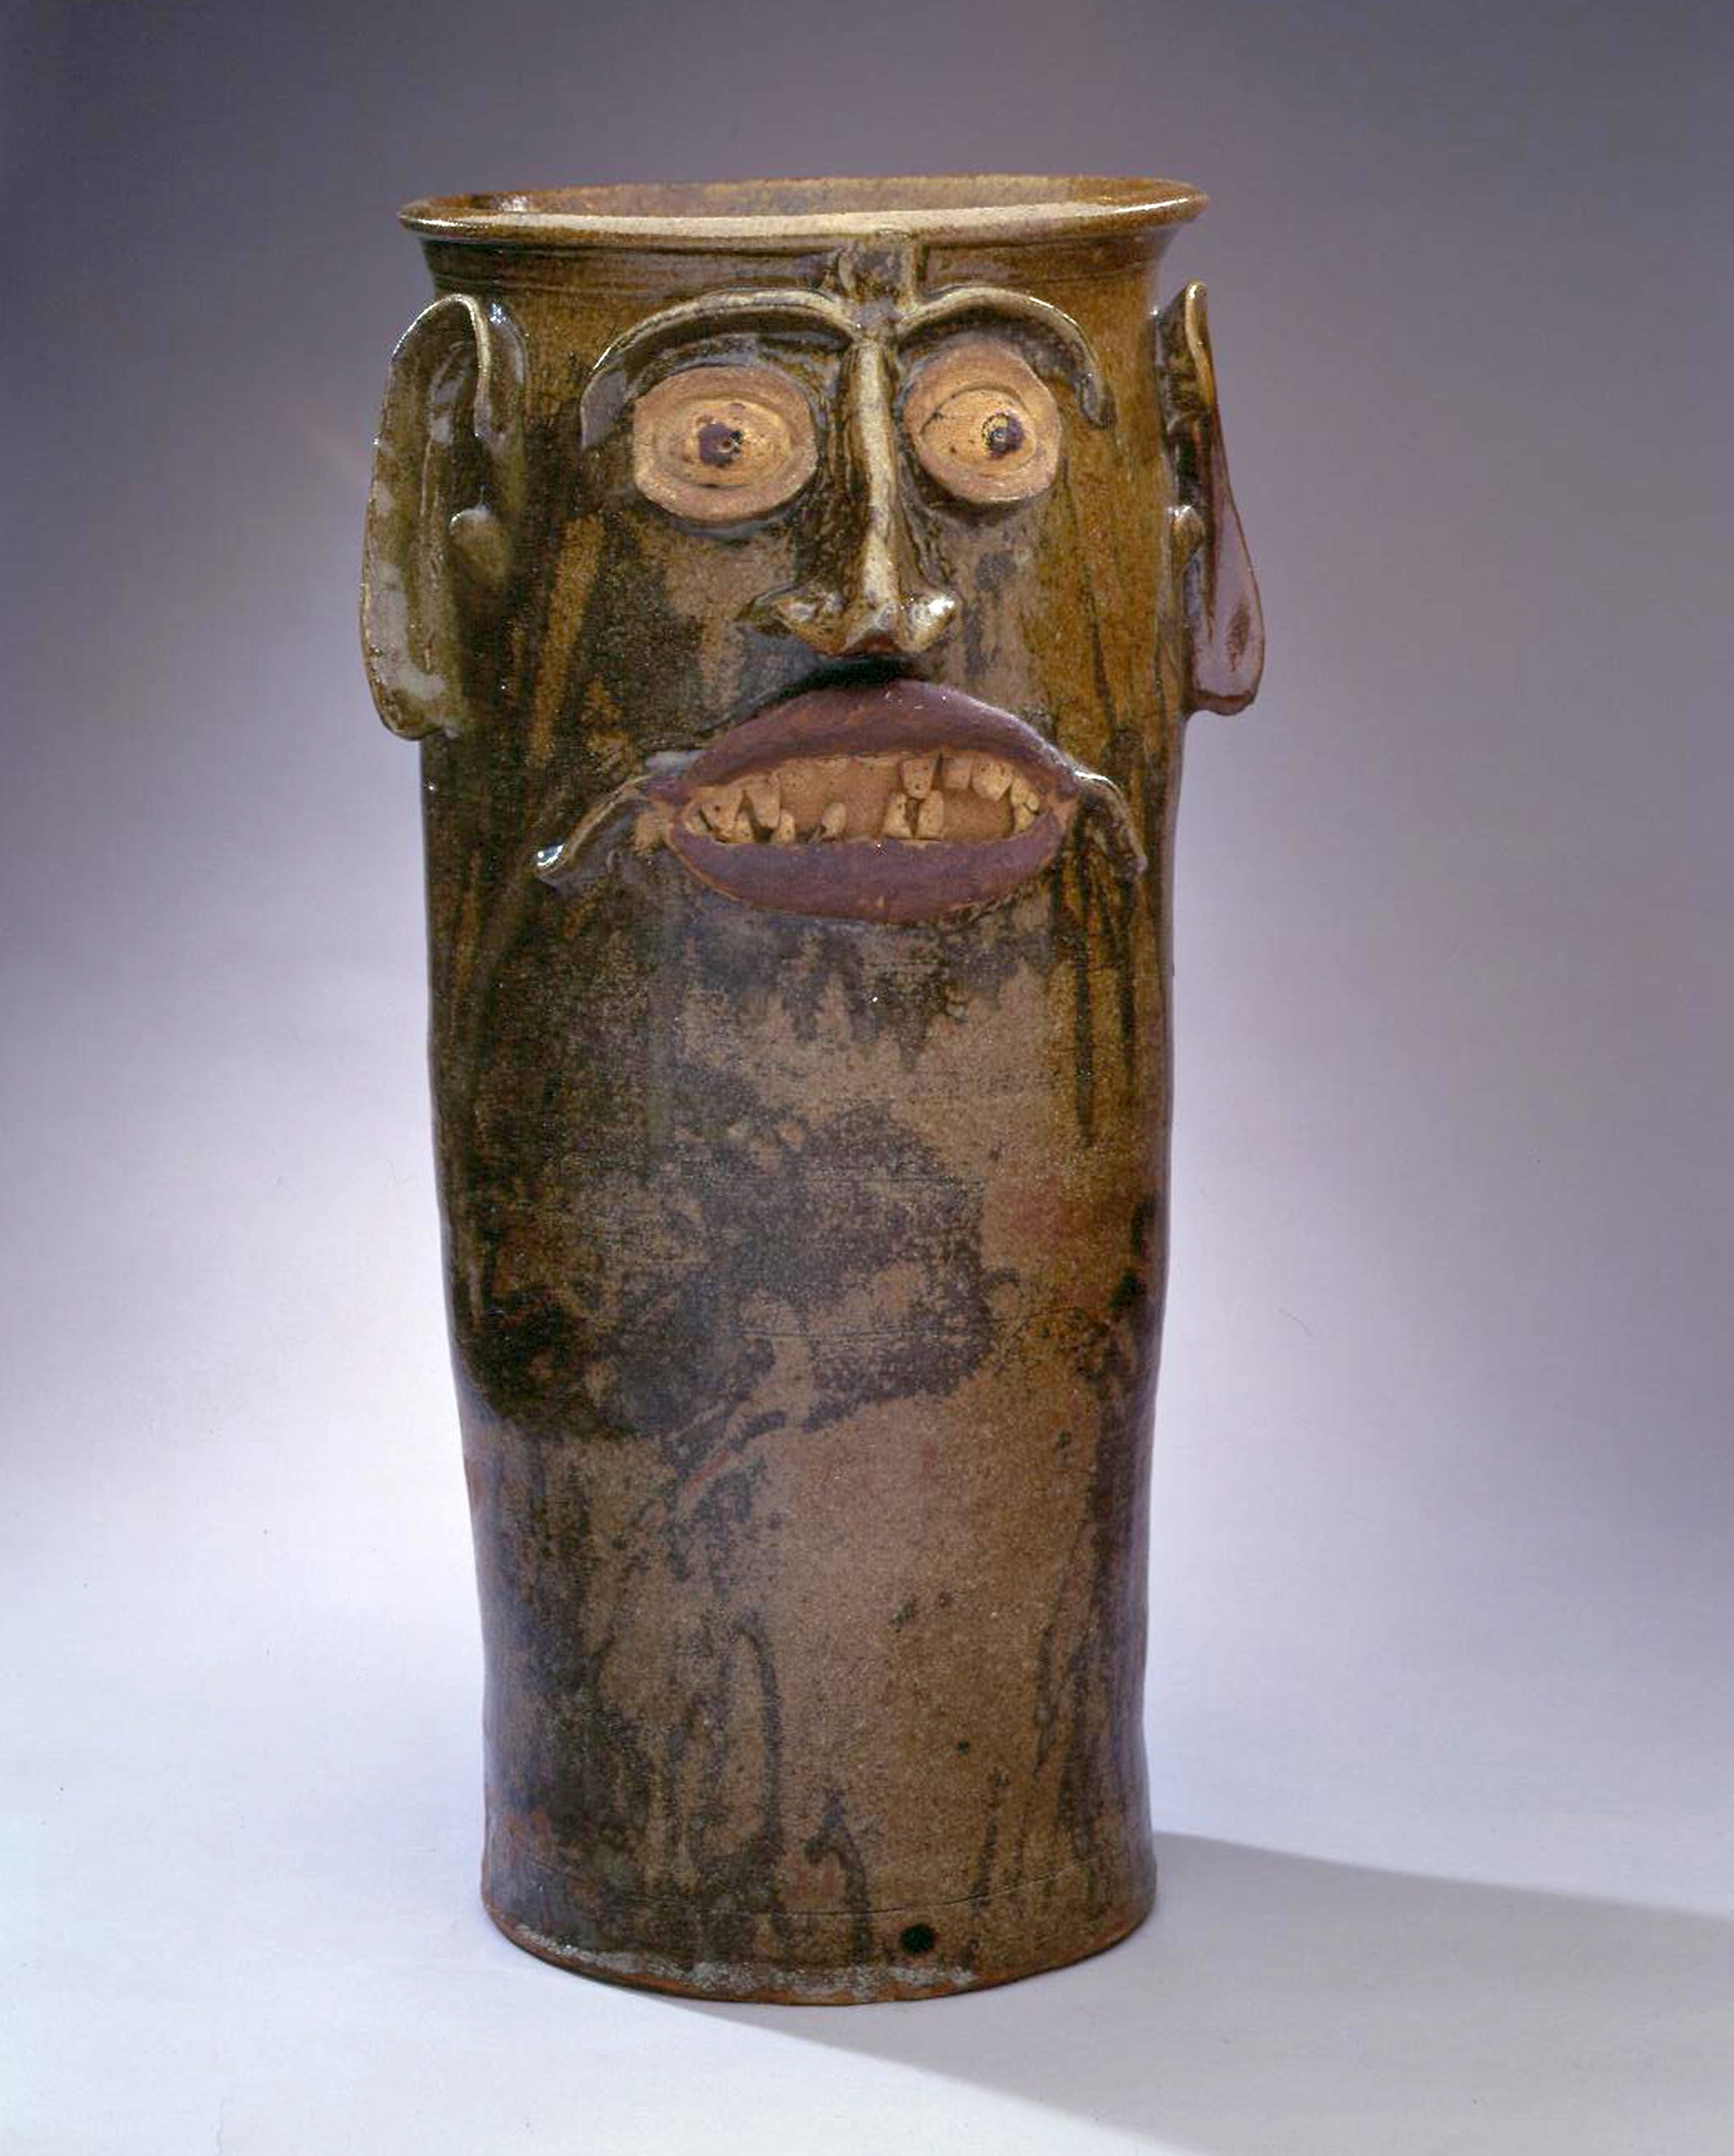 Tall brown face jar with a toothy grimace.